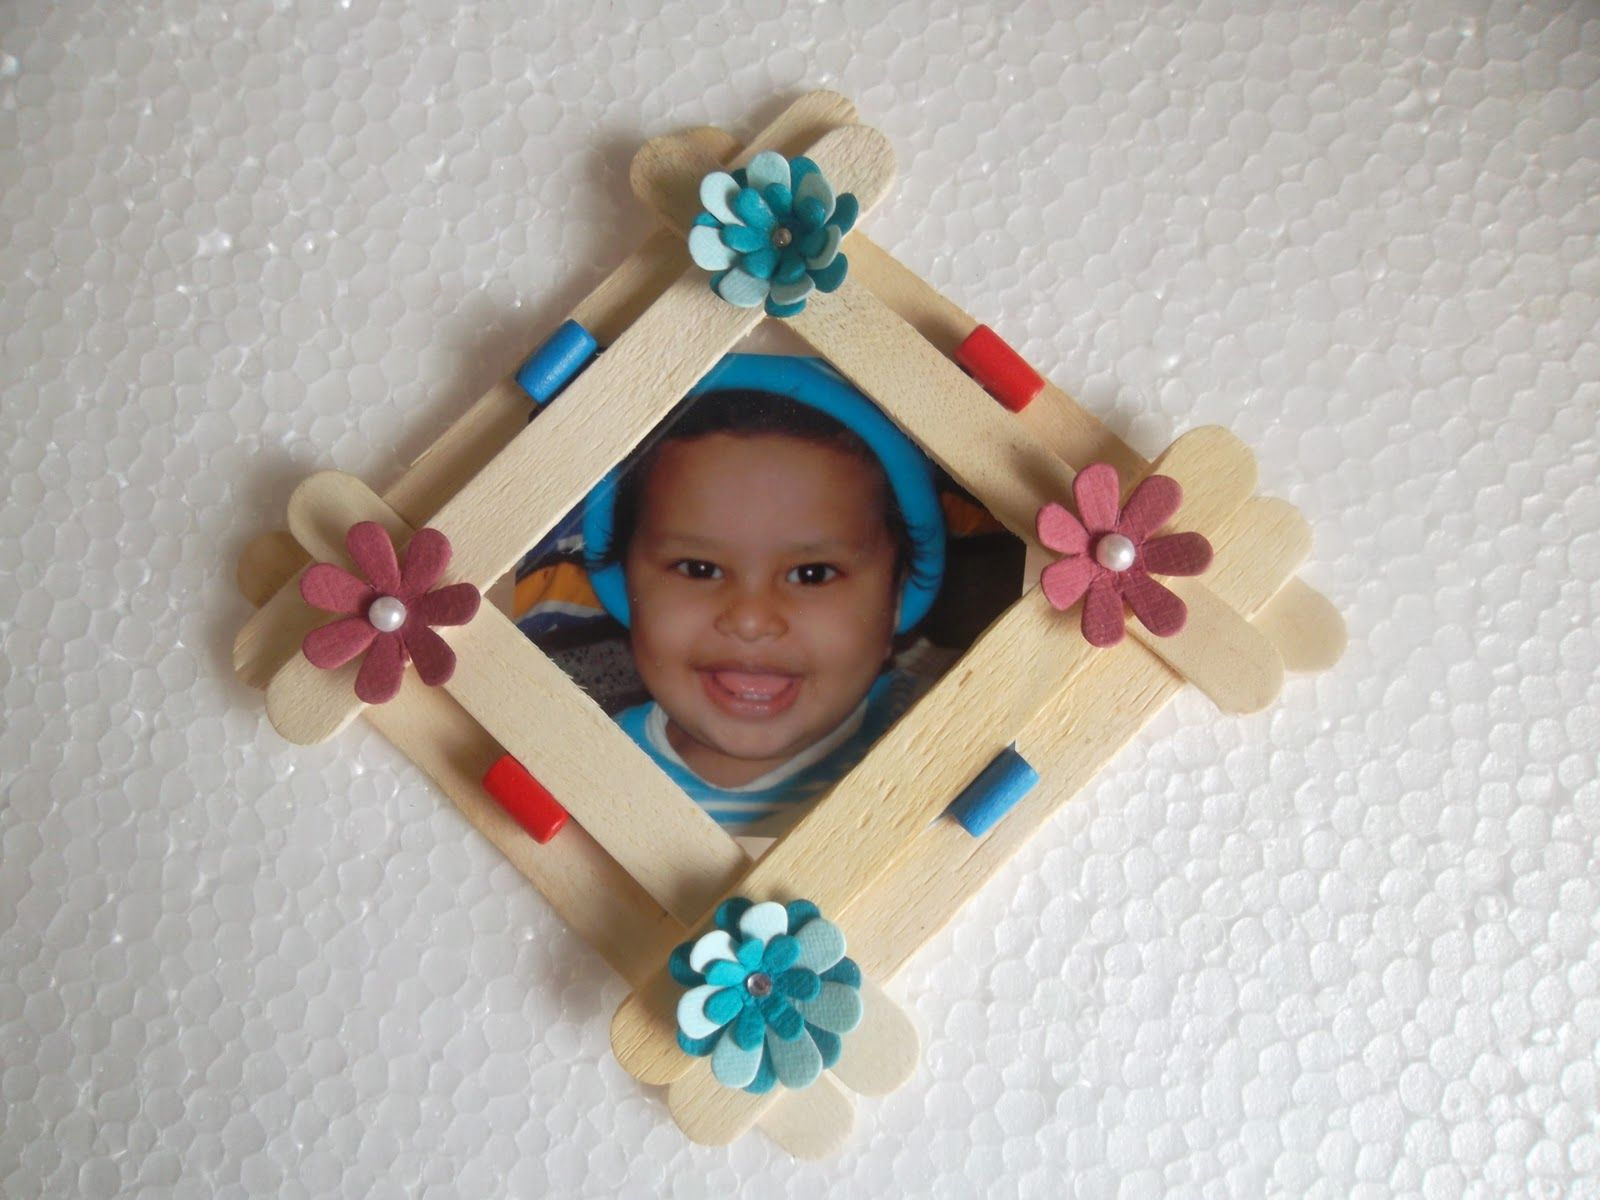 Popsicle stick frame google search ideas pinterest stick popsicle stick frame google search jeuxipadfo Gallery